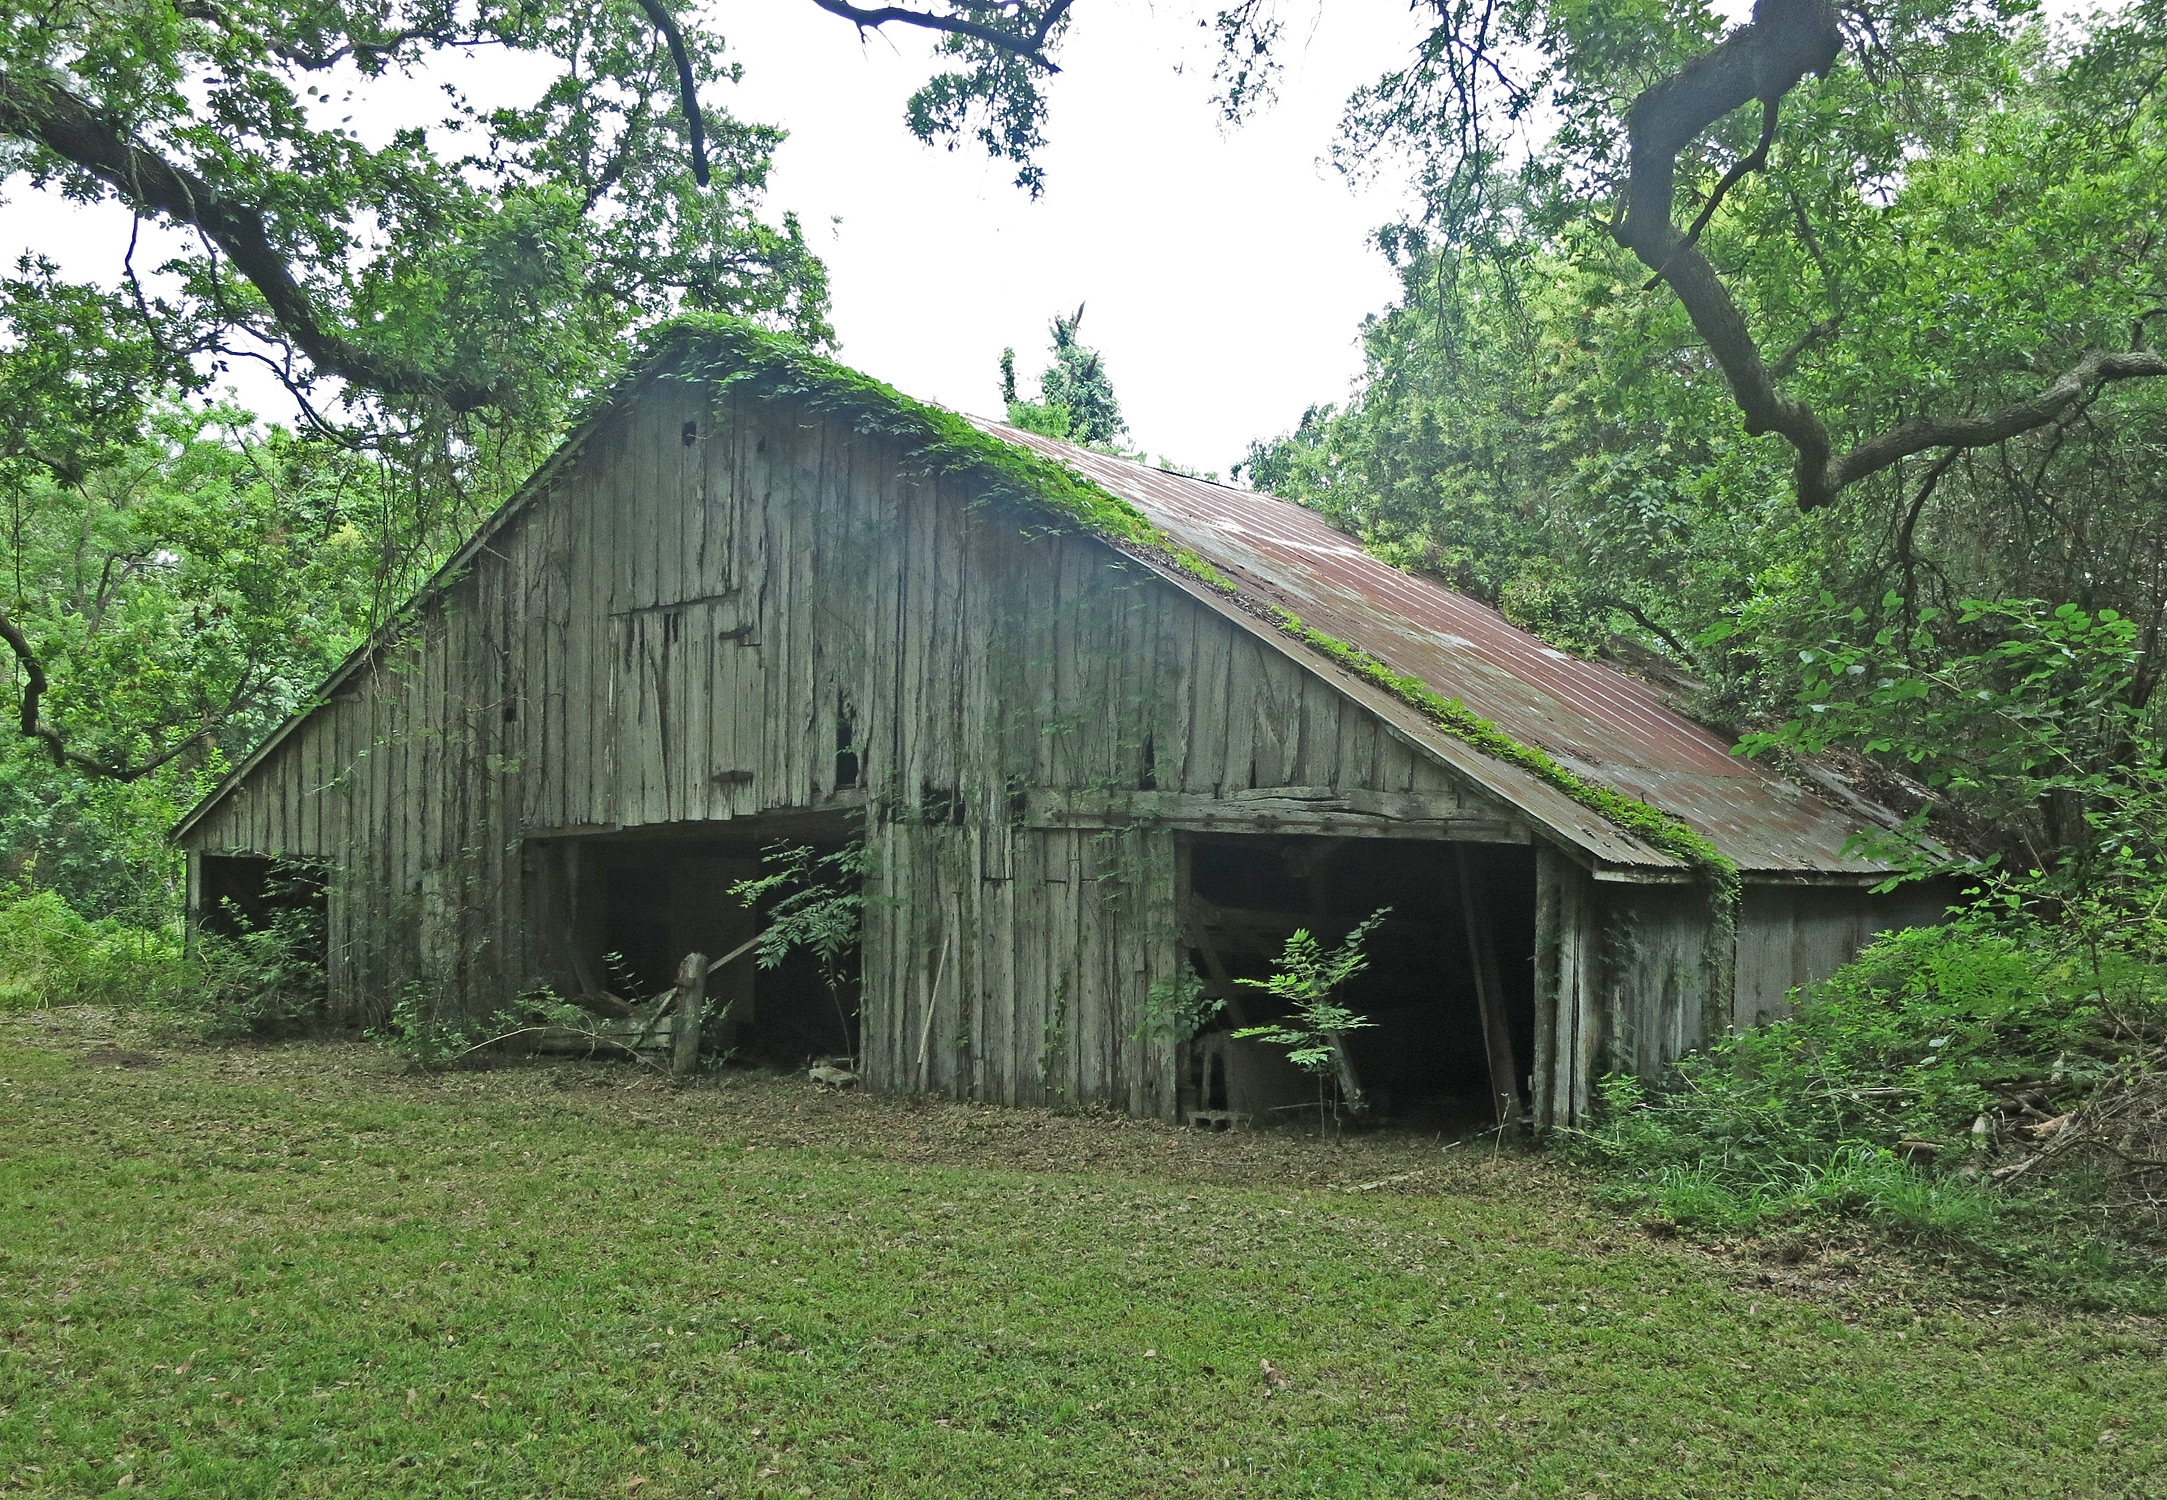 A Current Picture of the Stringfellow Orchards Barn